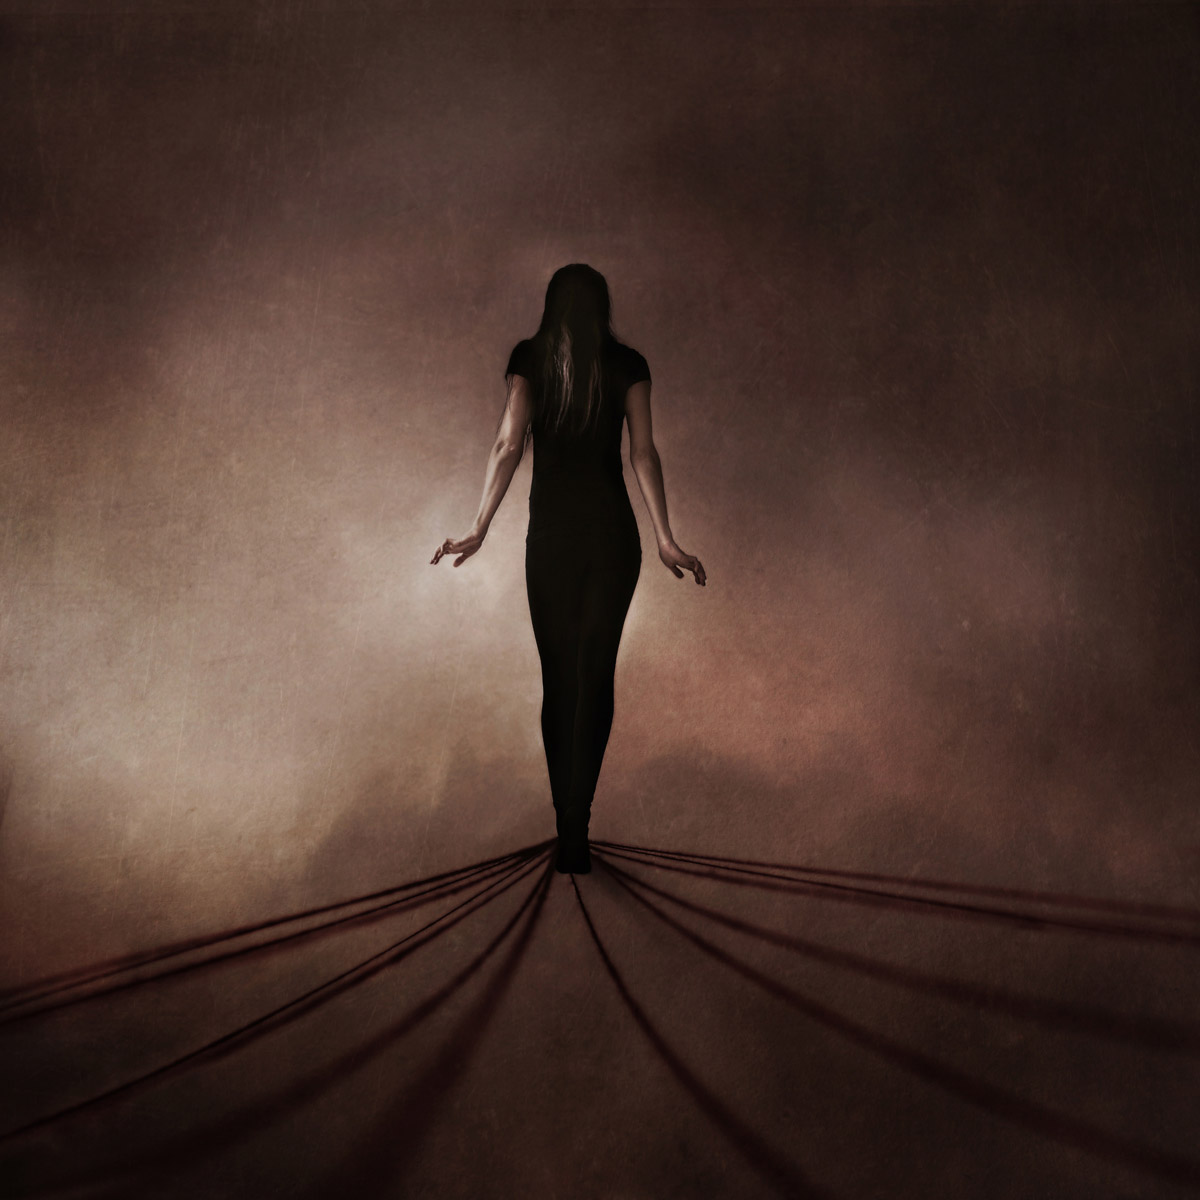 The Path You choose | Anja Matko | String of life